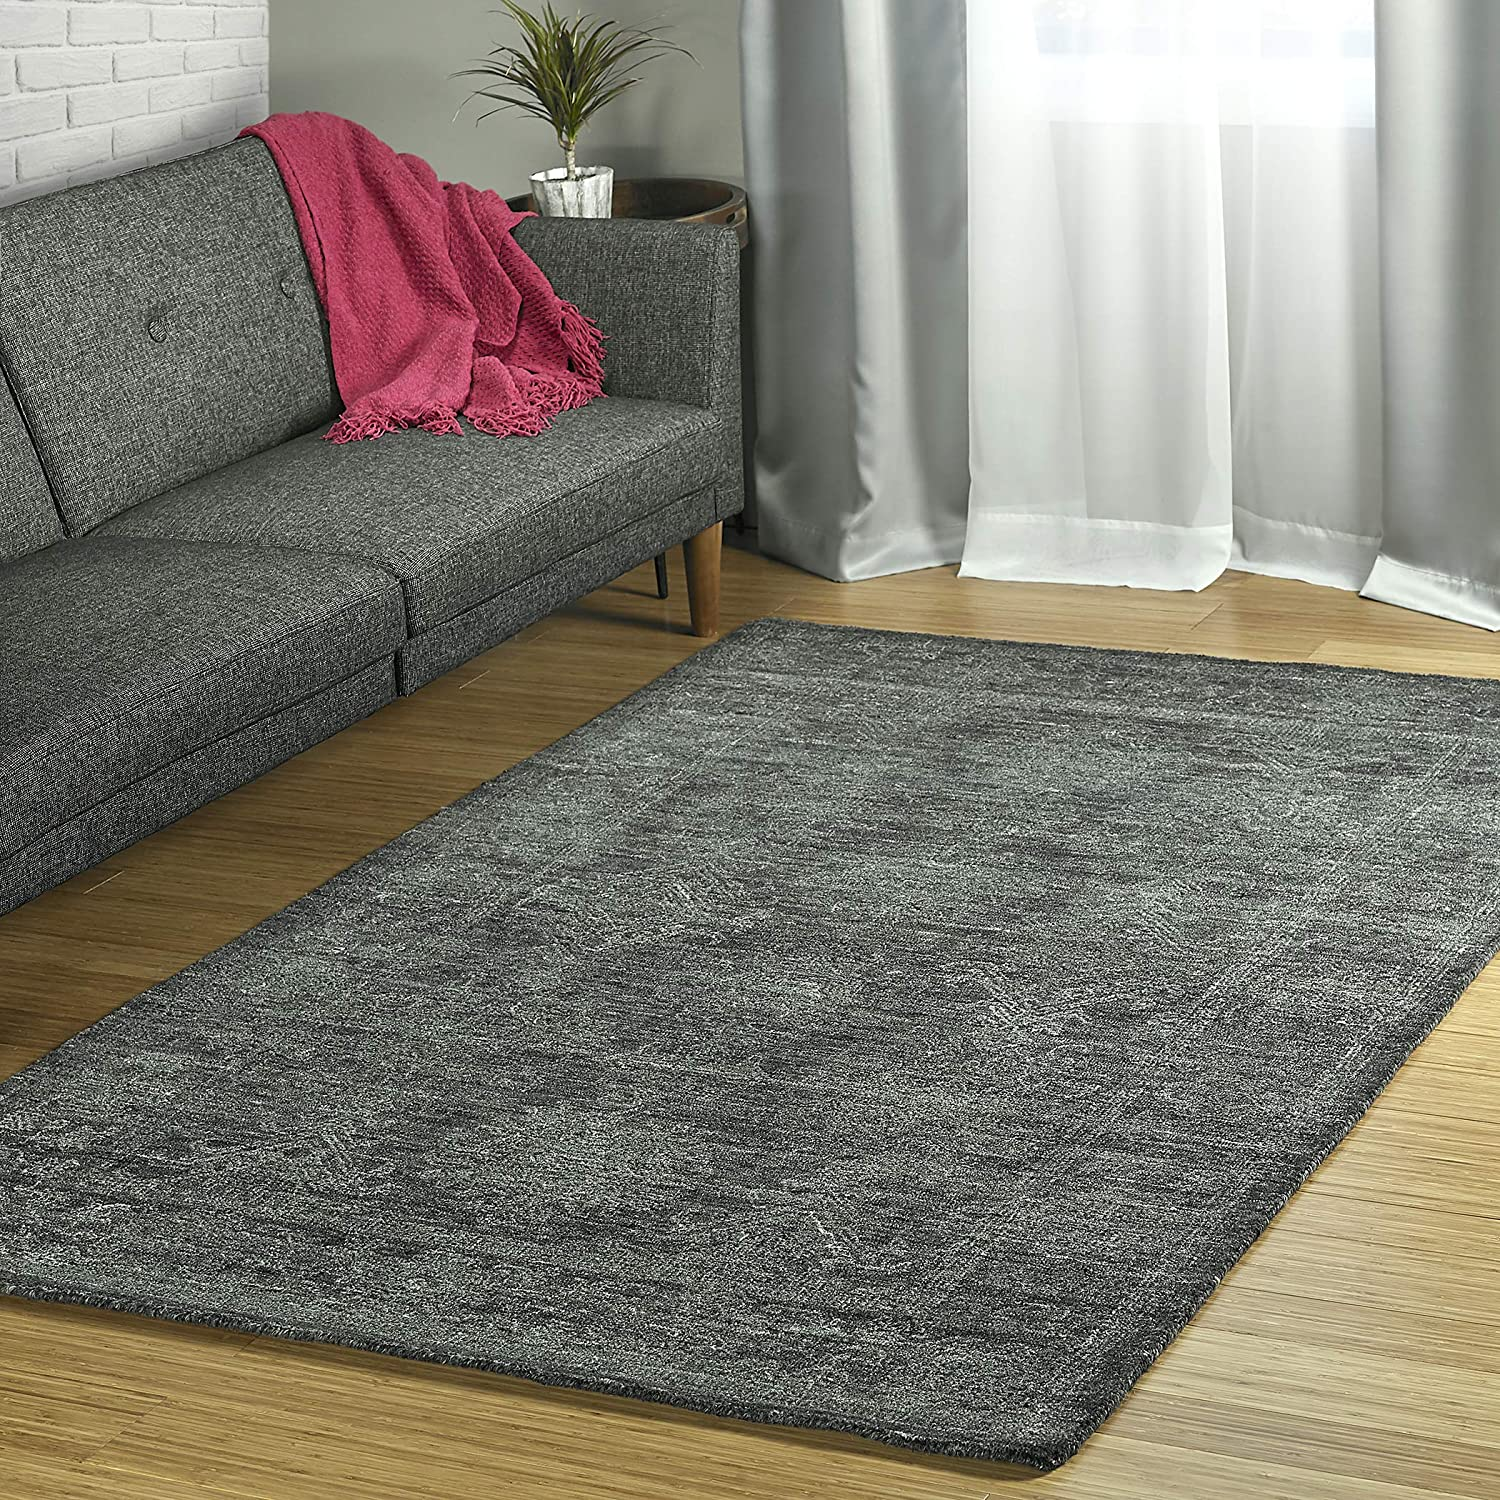 Amazon Com Kaleen 5 X 7 9 Wool Area Rug In Charcoal Hand Tufted Palladian Collection Furniture Decor